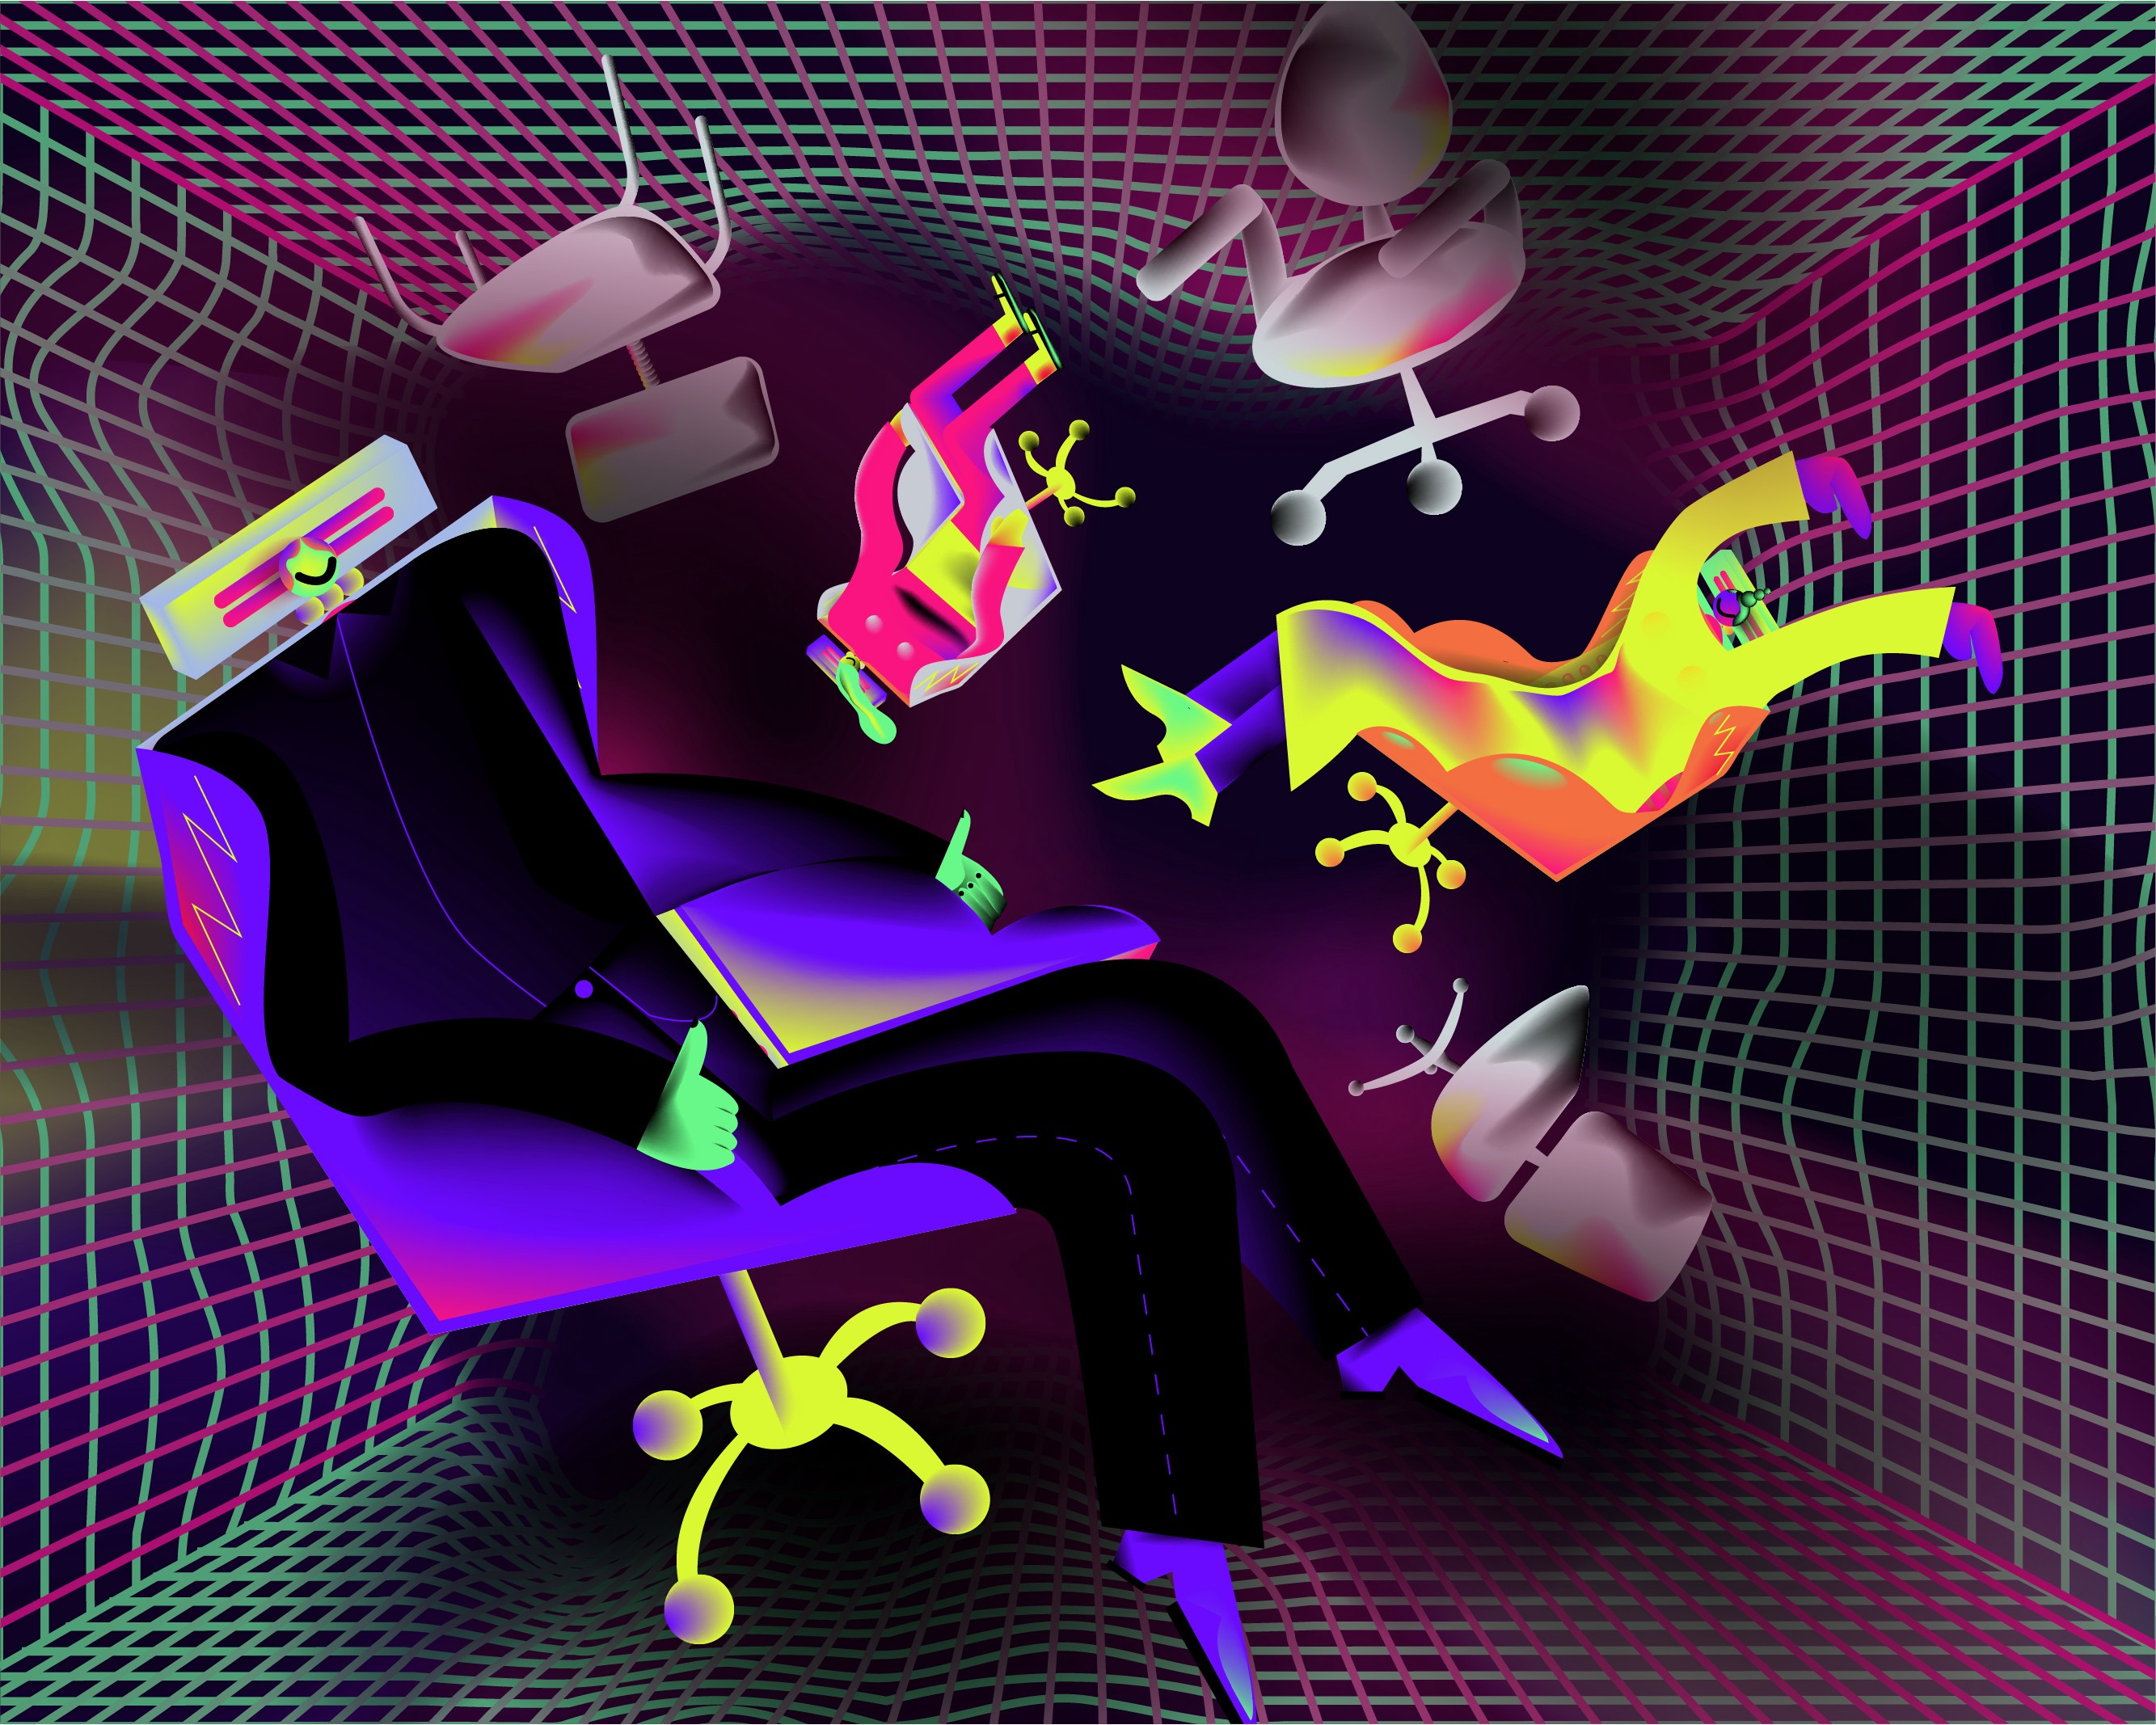 An illustration of a character sitting in a gaming chair, in front of a vortex of regular office chairs.